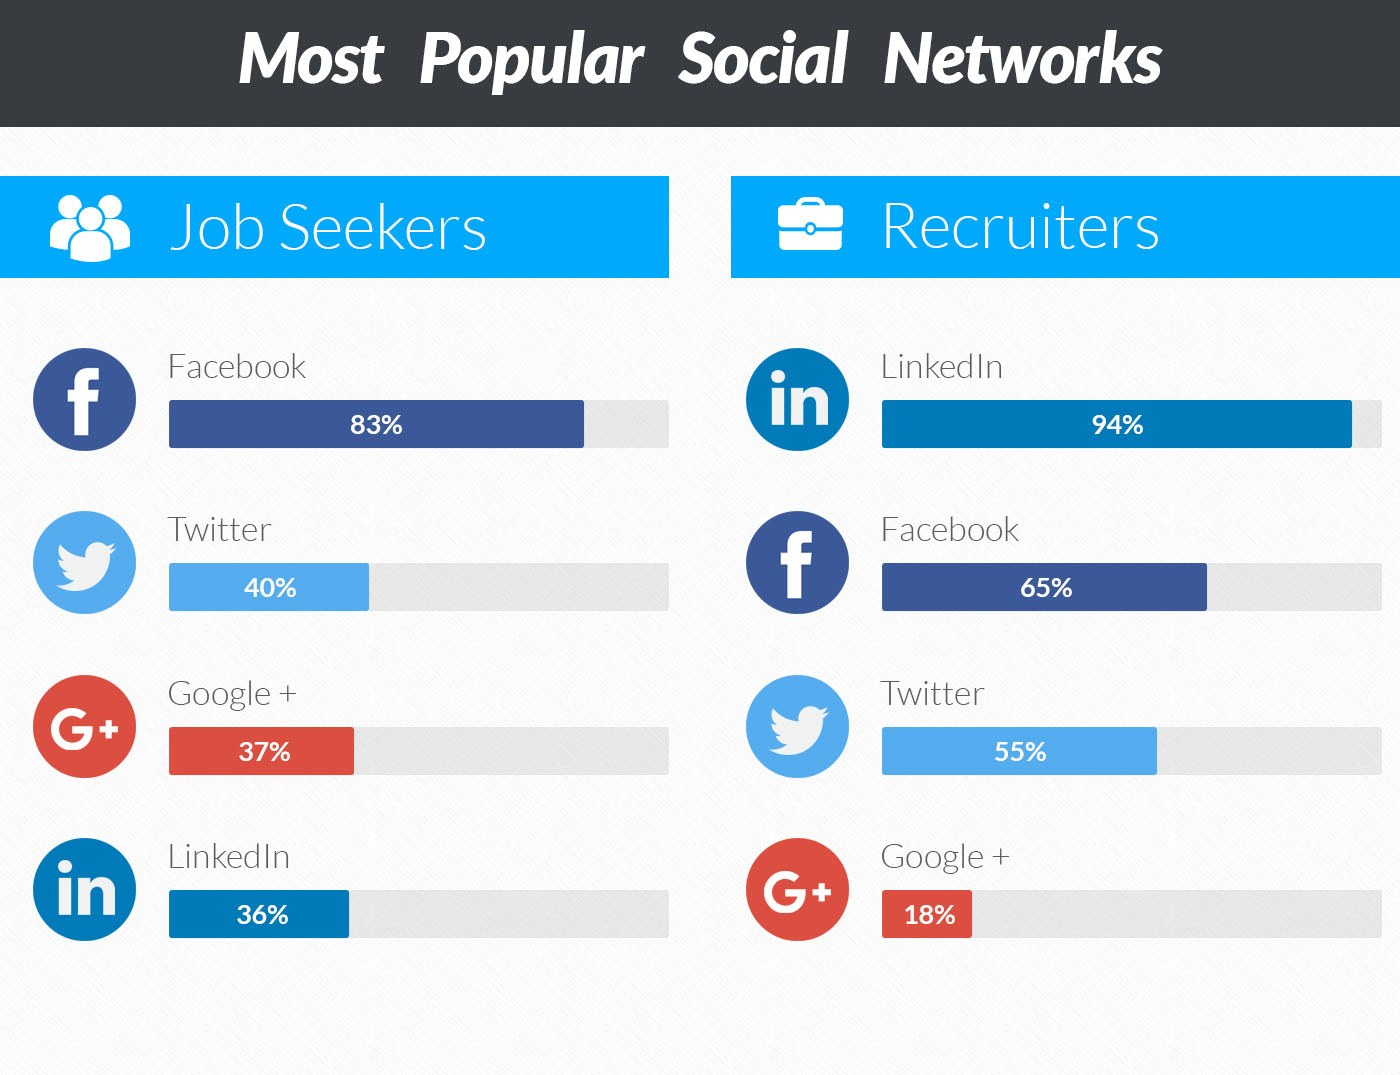 Most popular gay social networking sites